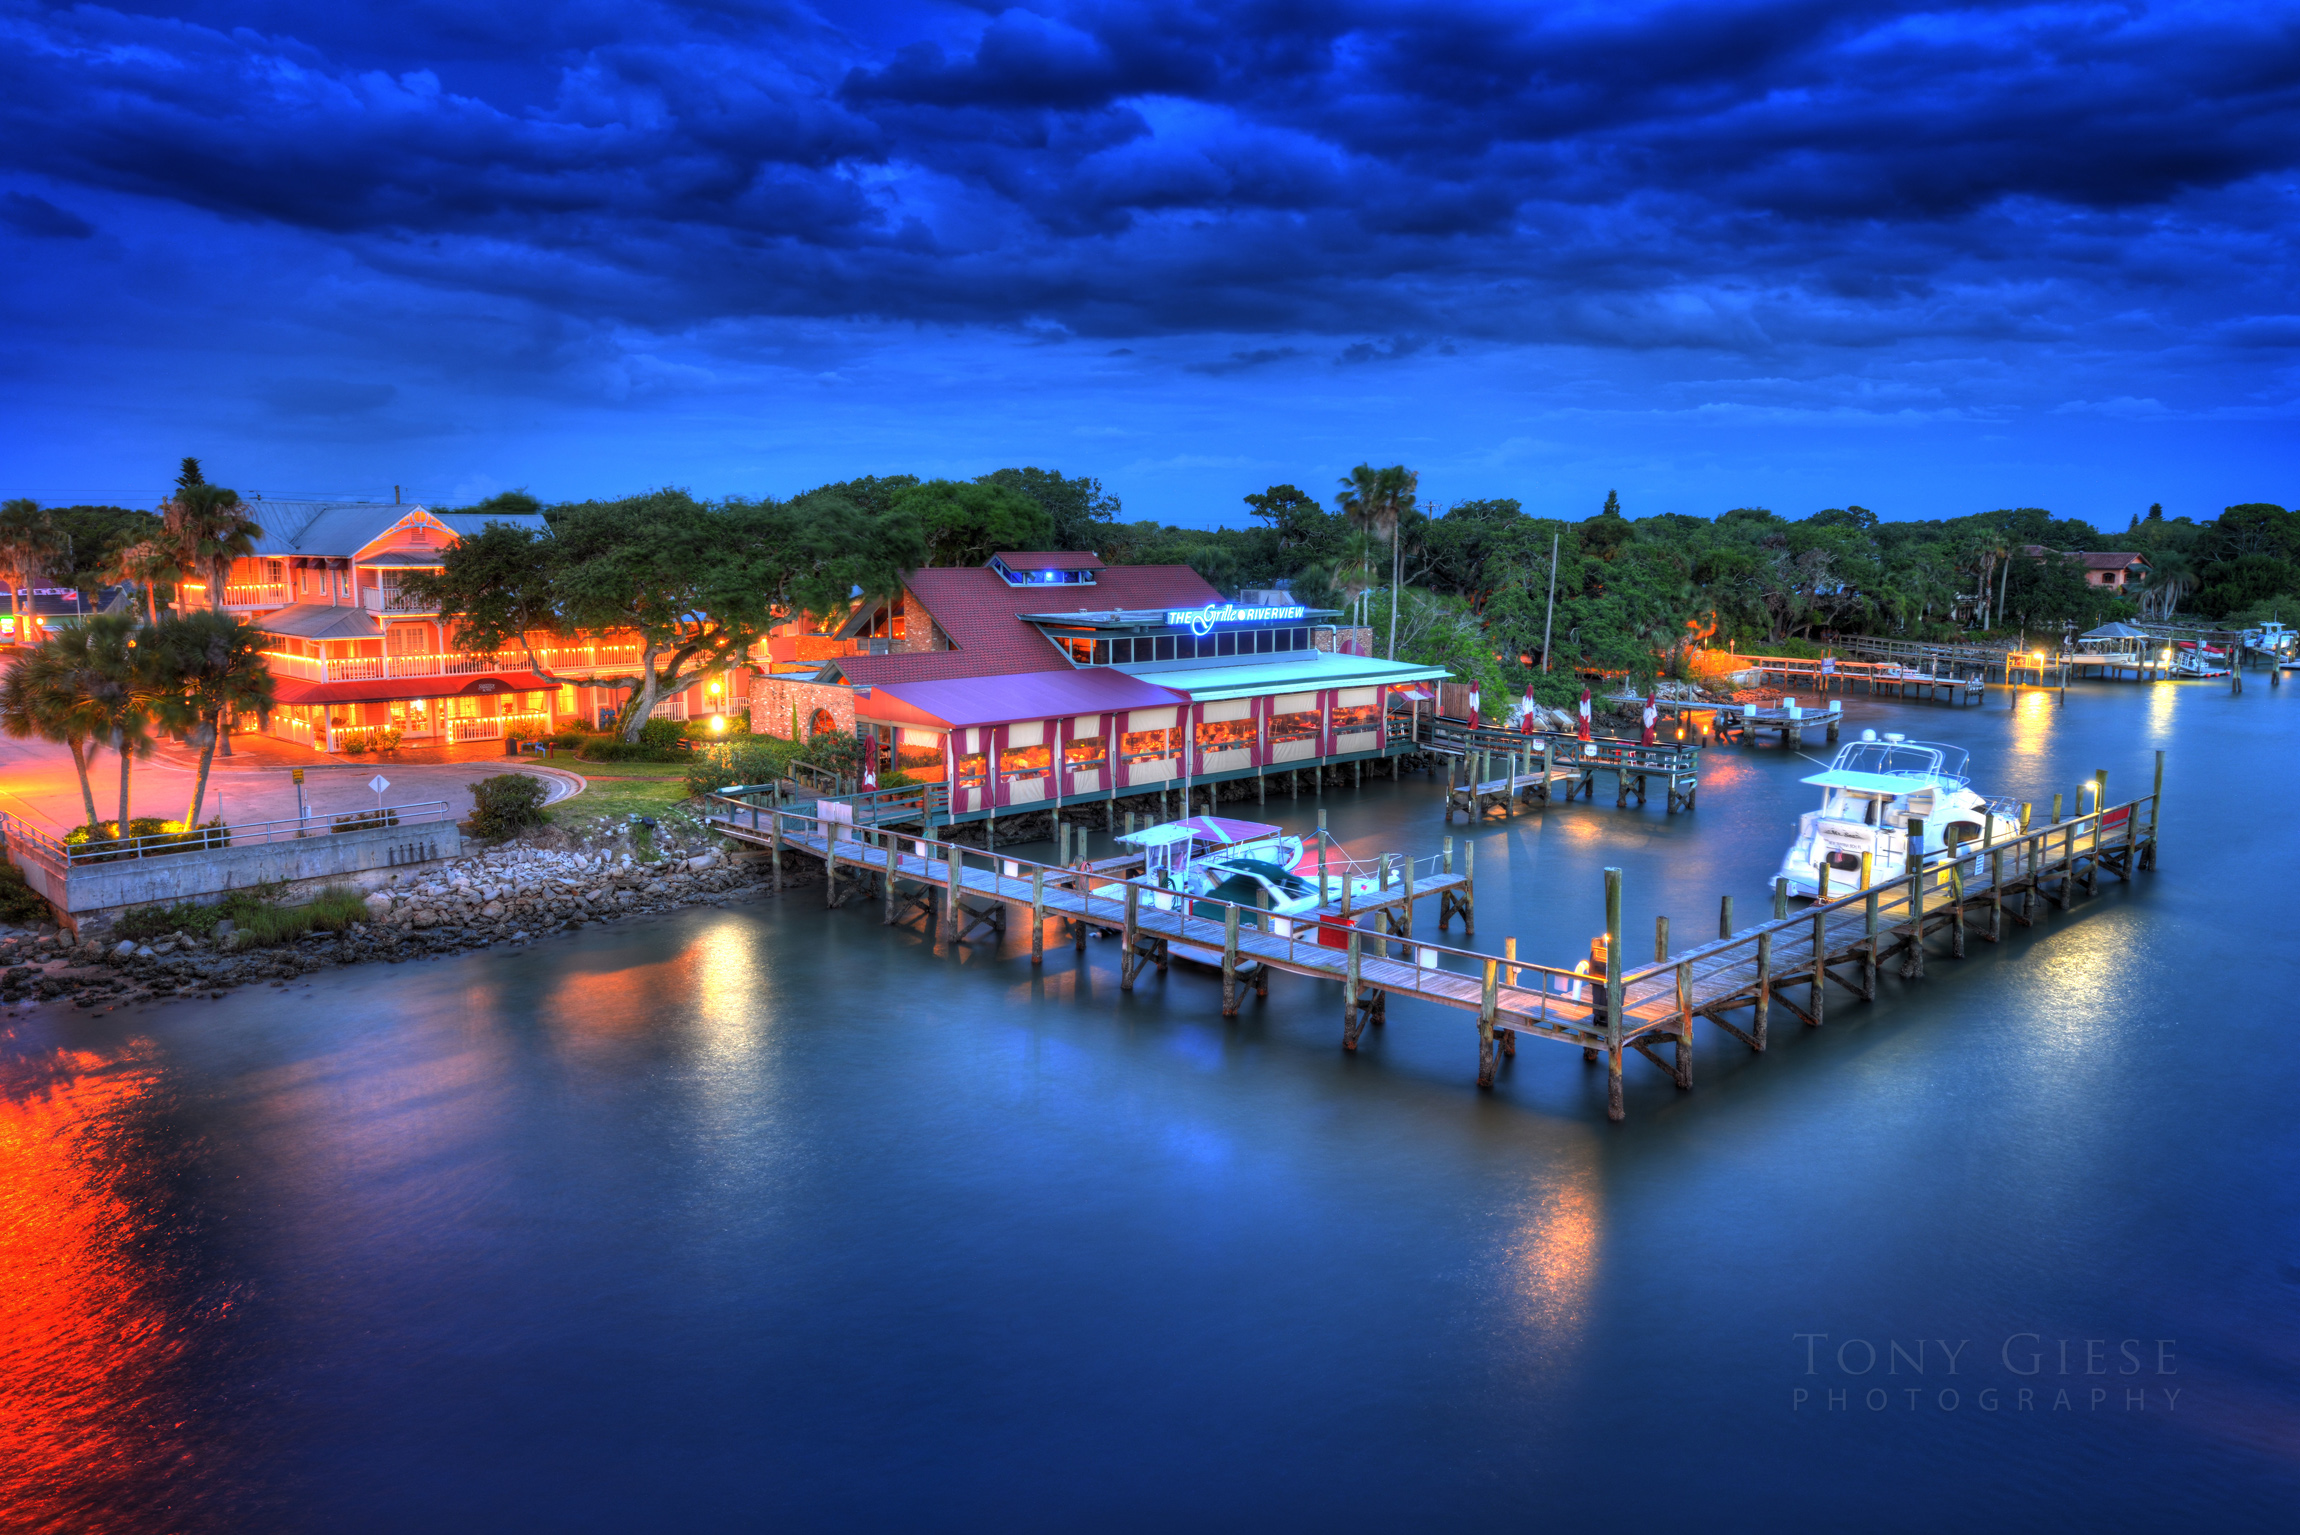 The Grille at Riverview, New Smyrna. Photography by Tony Giese